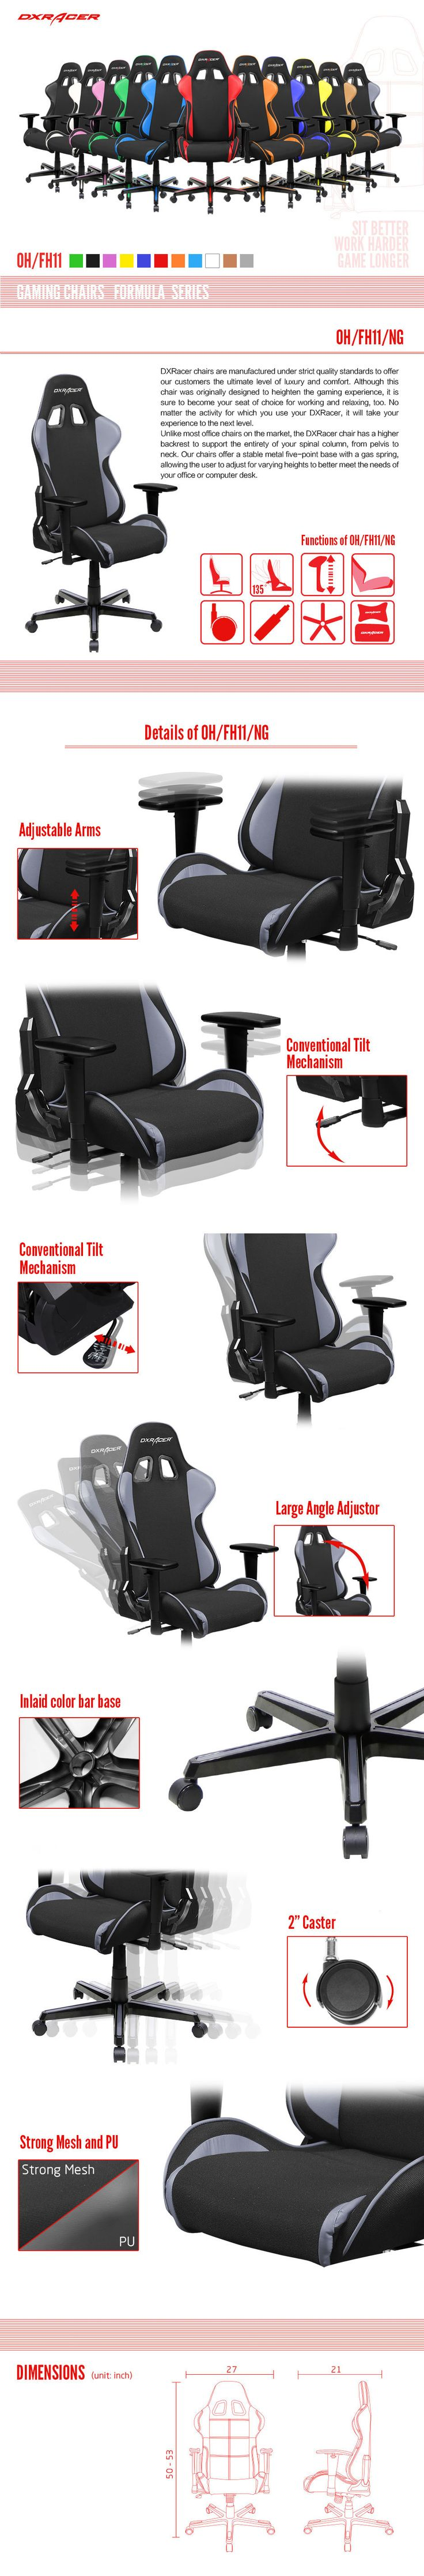 Best 25 Gaming chair pc ideas on Pinterest